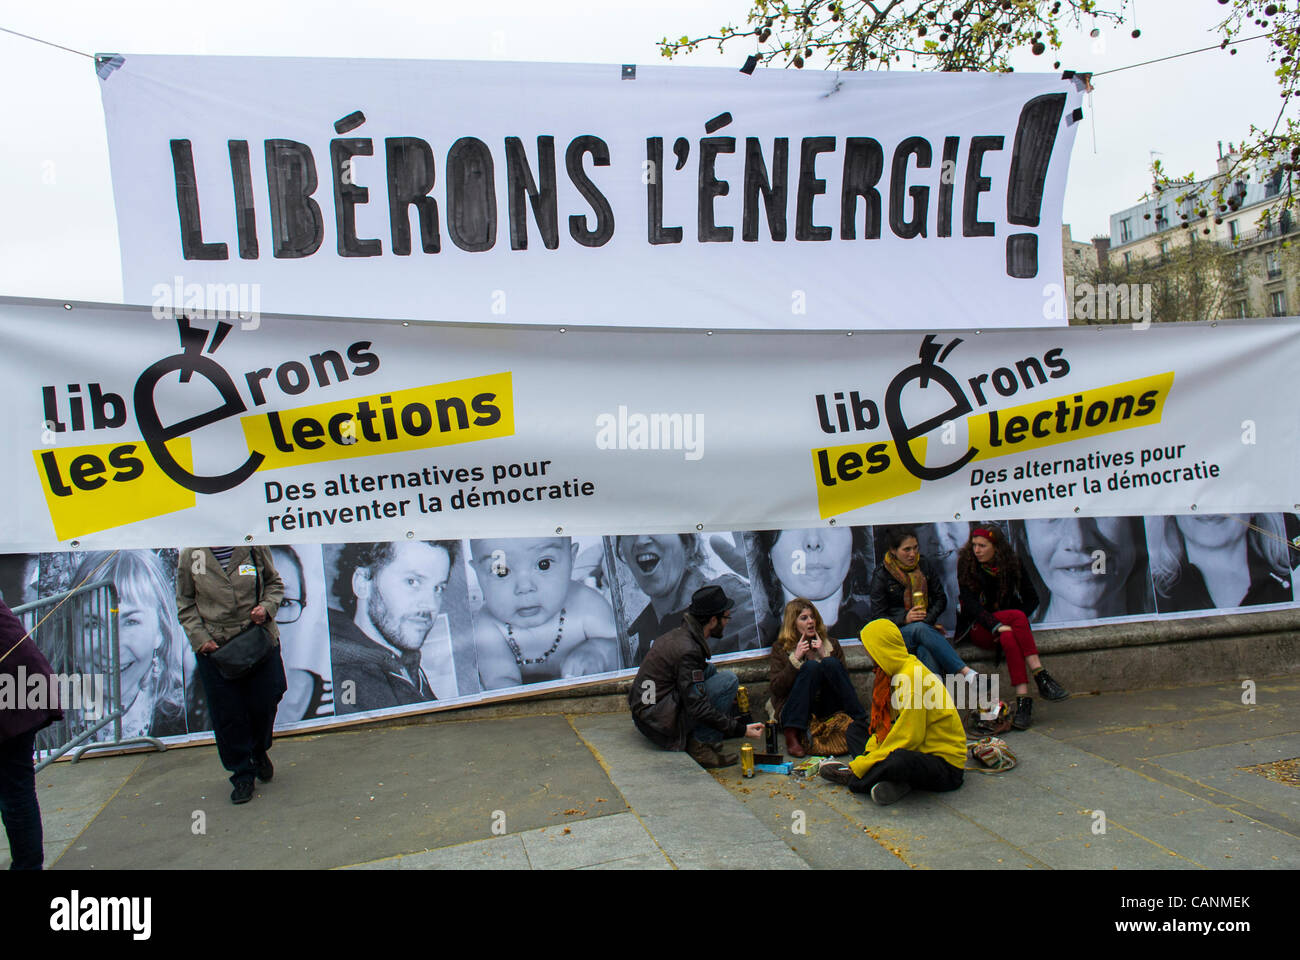 Paris, France, Environment Awareness Public Event,  'Liberons les Elections', during French Presidential - Stock Image